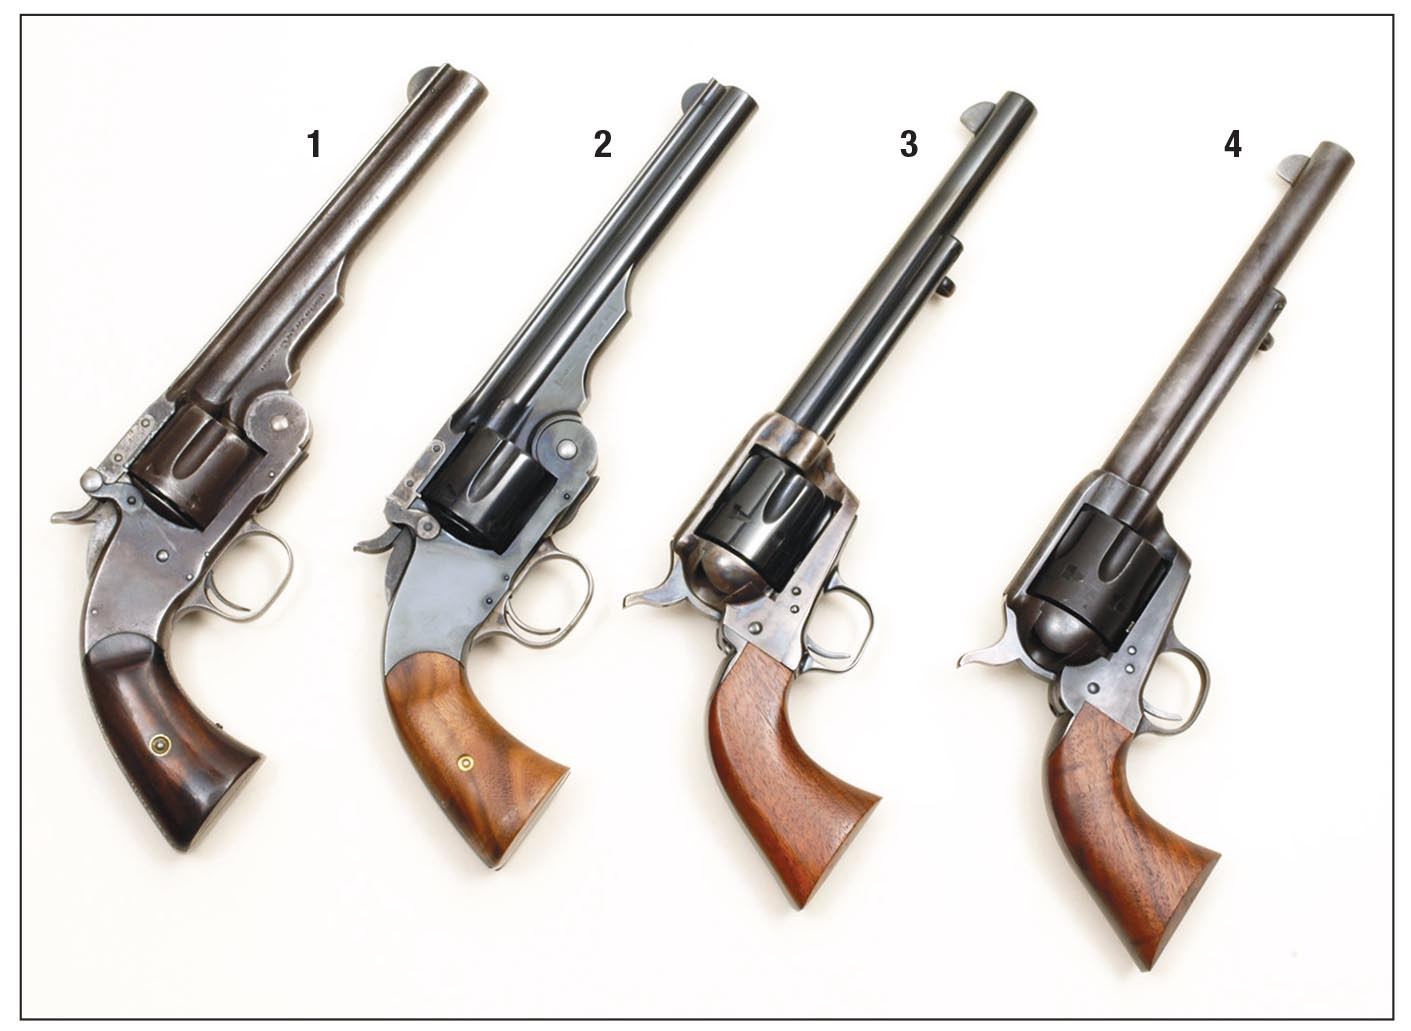 Mike has handloaded .45s for all these revolvers: (1) an original S&W Model No. 3 (Schofield), (2) new S&W Model No. 3 (Schofield), (3) Colt SAA 1873/1973 Commemorative and a (4) U.S. Firearms Custer Battlefield .45.